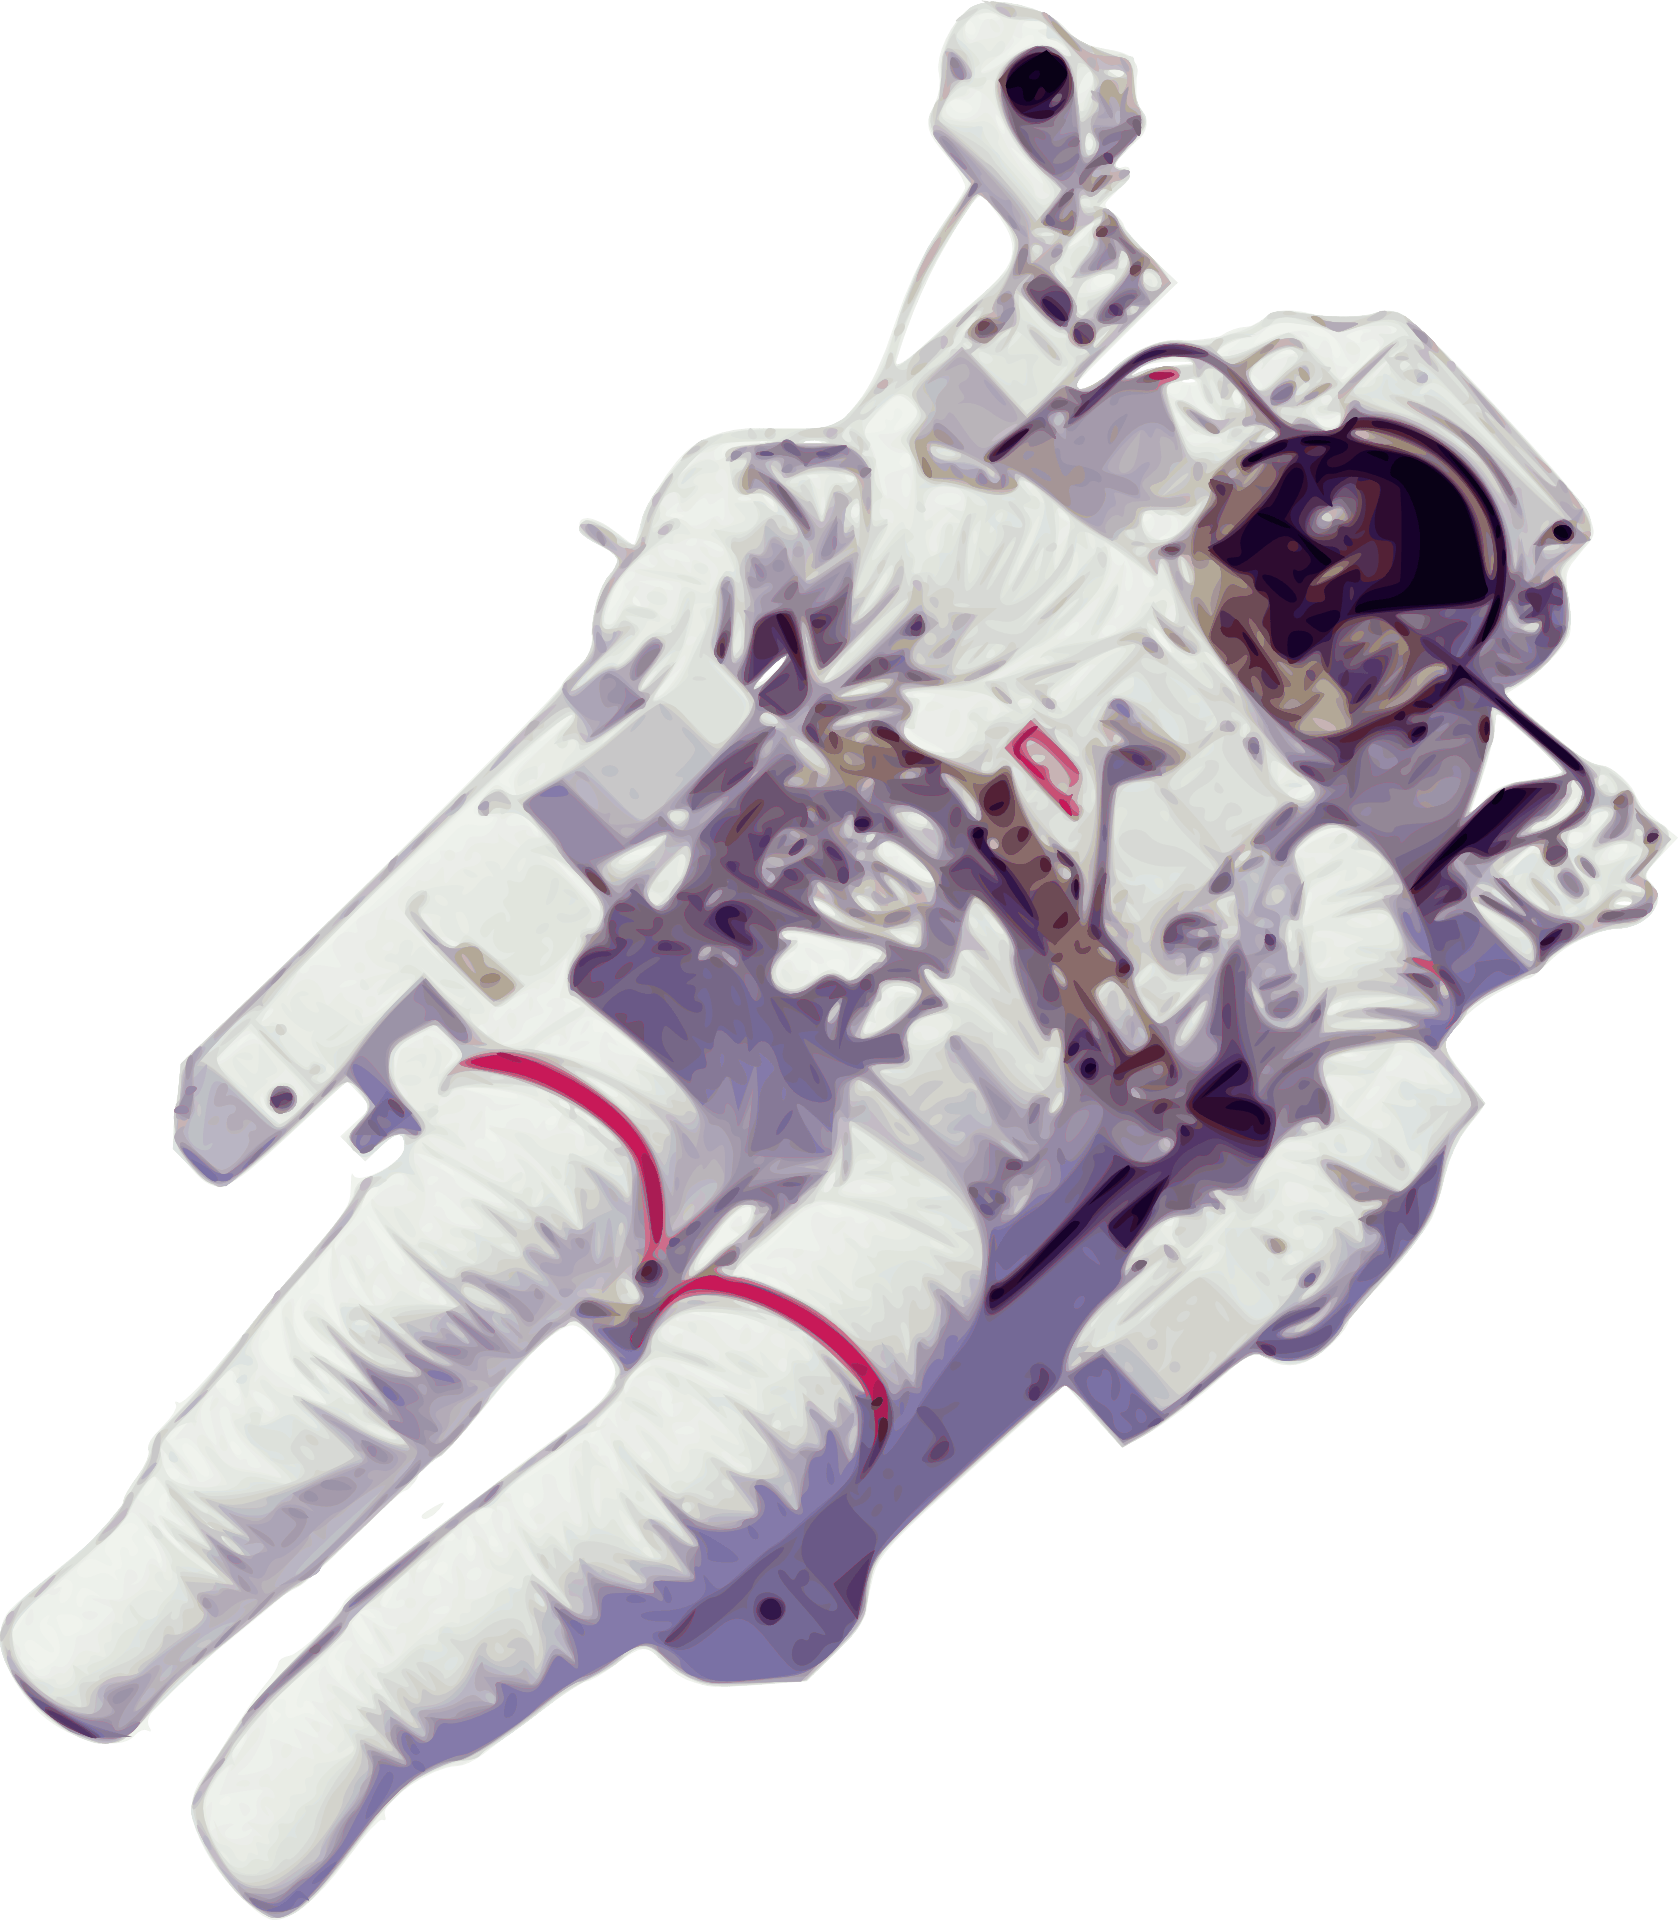 spacewalks-153581